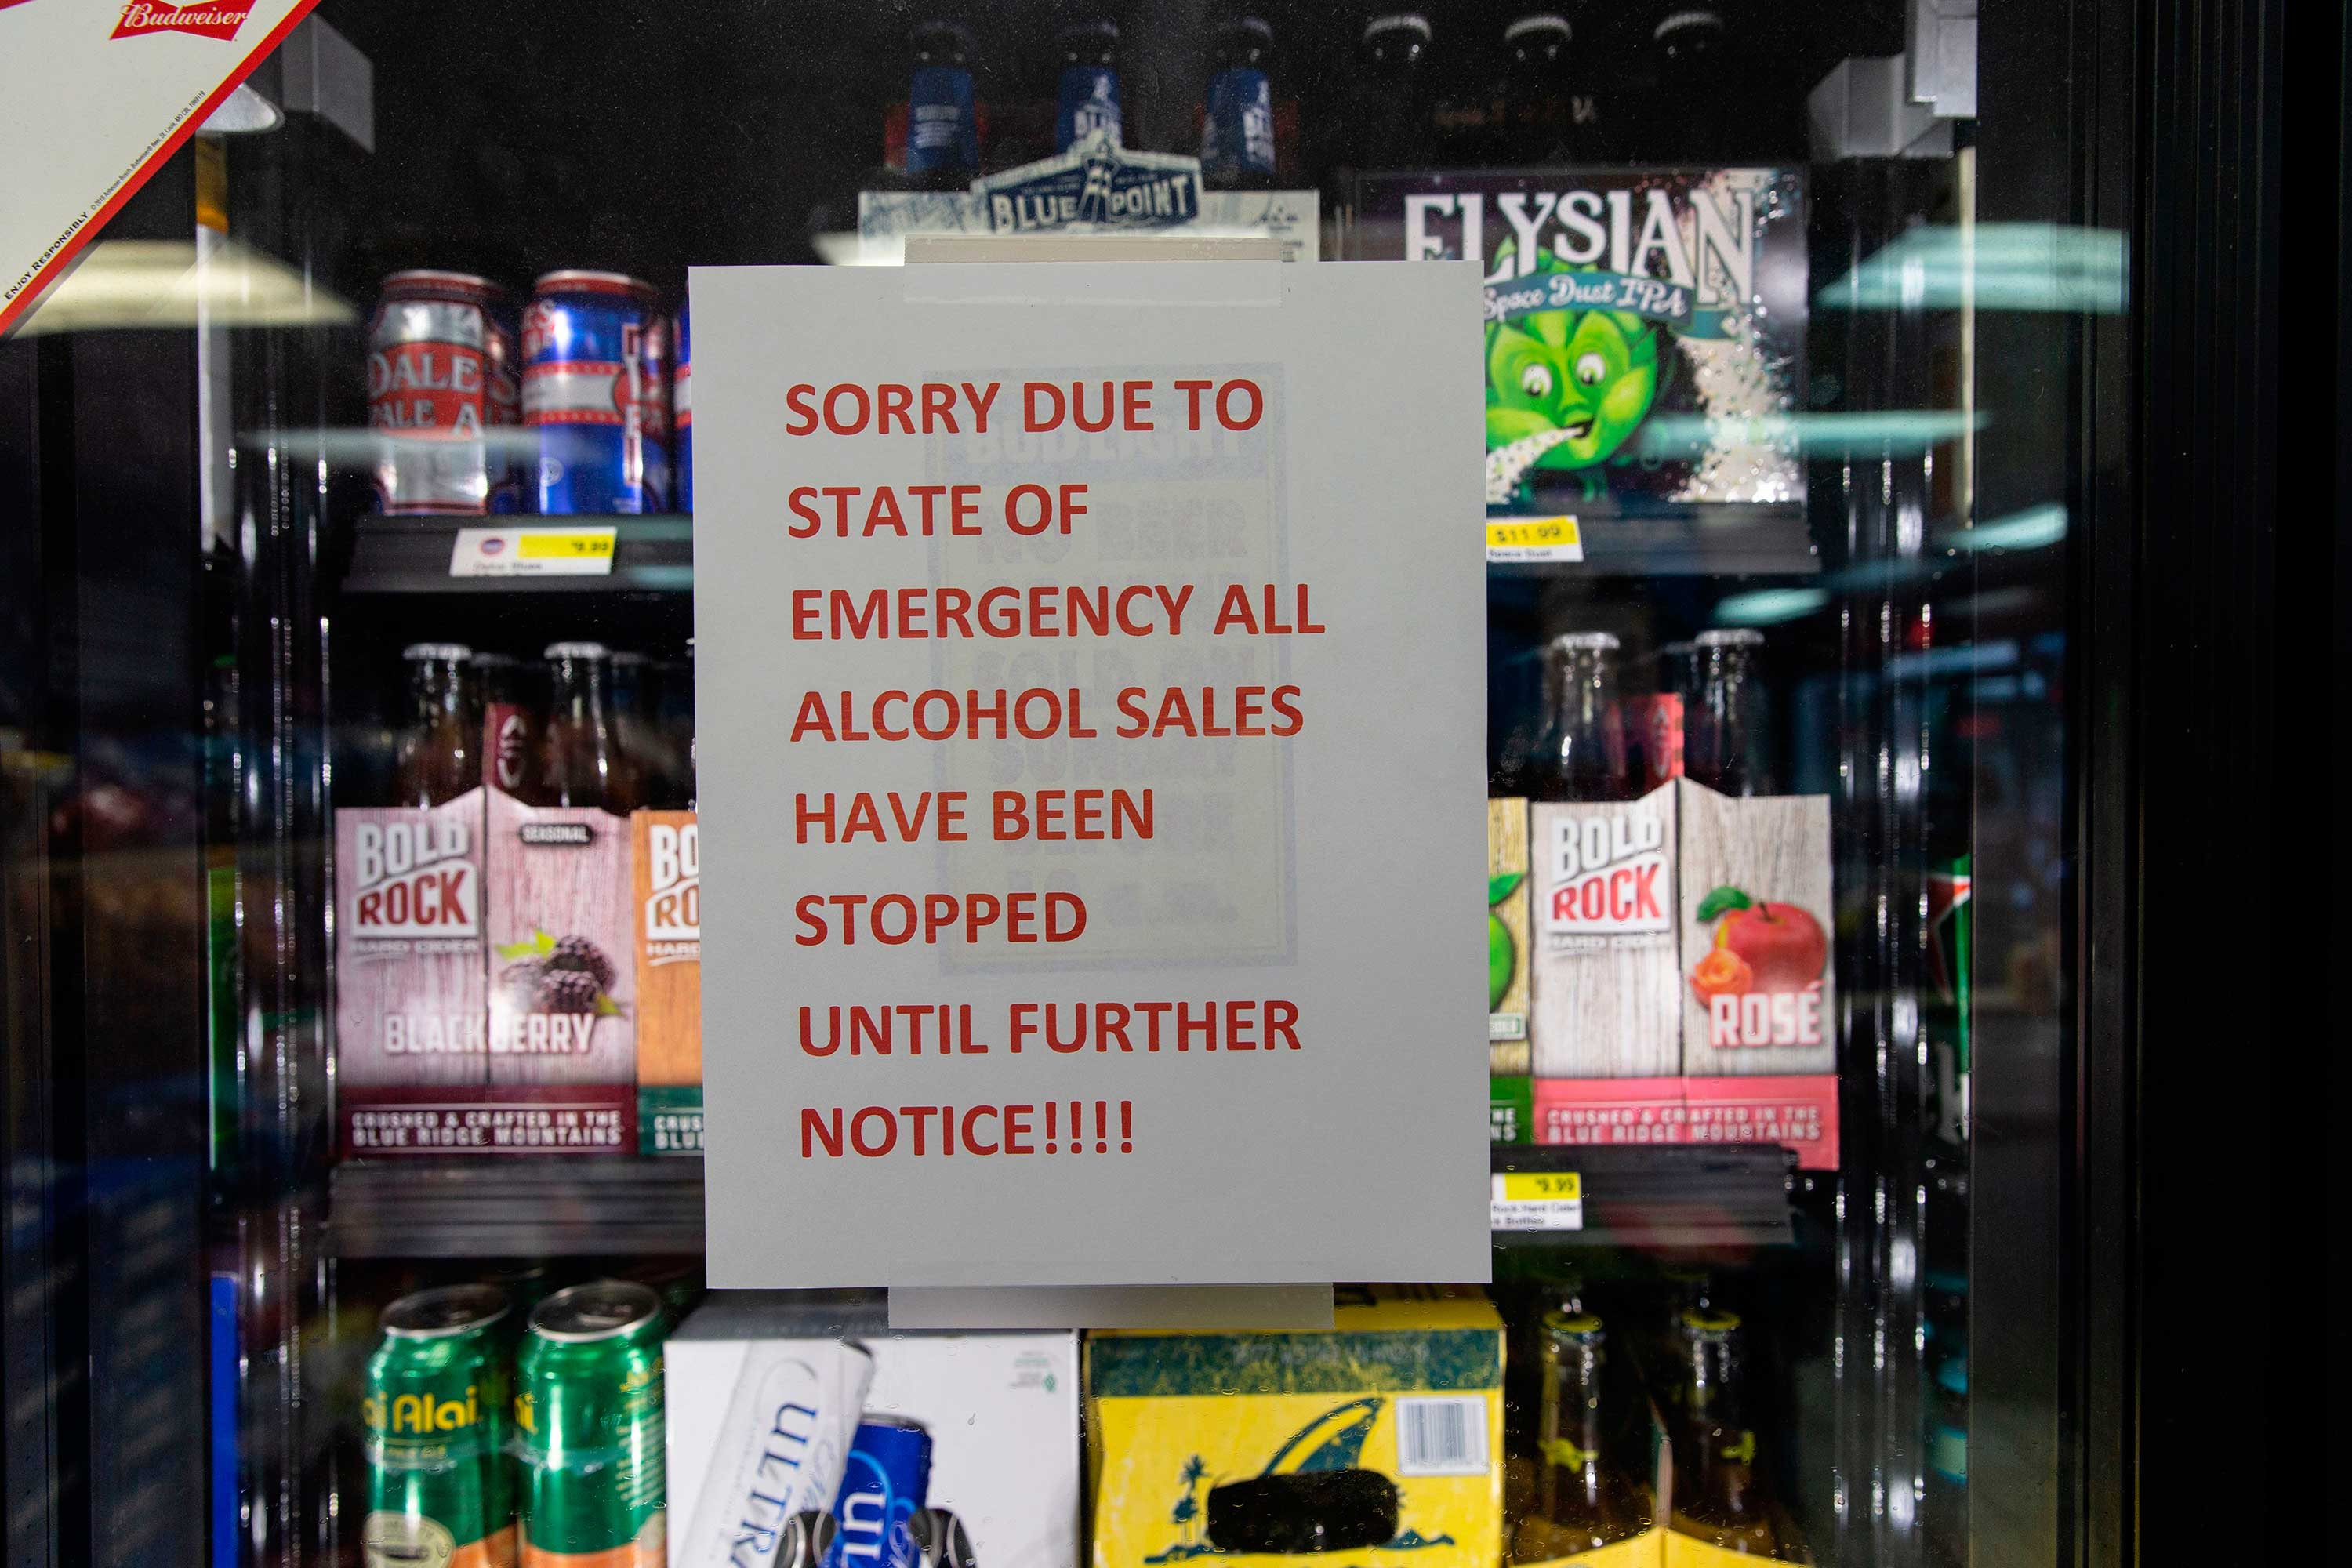 <div class='meta'><div class='origin-logo' data-origin='none'></div><span class='caption-text' data-credit='ALEX EDELMAN/AFP/Getty Images'>A sign warning customers that alcohol sales are suspended due to a 'state of emergency' at an Exxon station in Harbinger, North Carolina on September 11, 2018.</span></div>